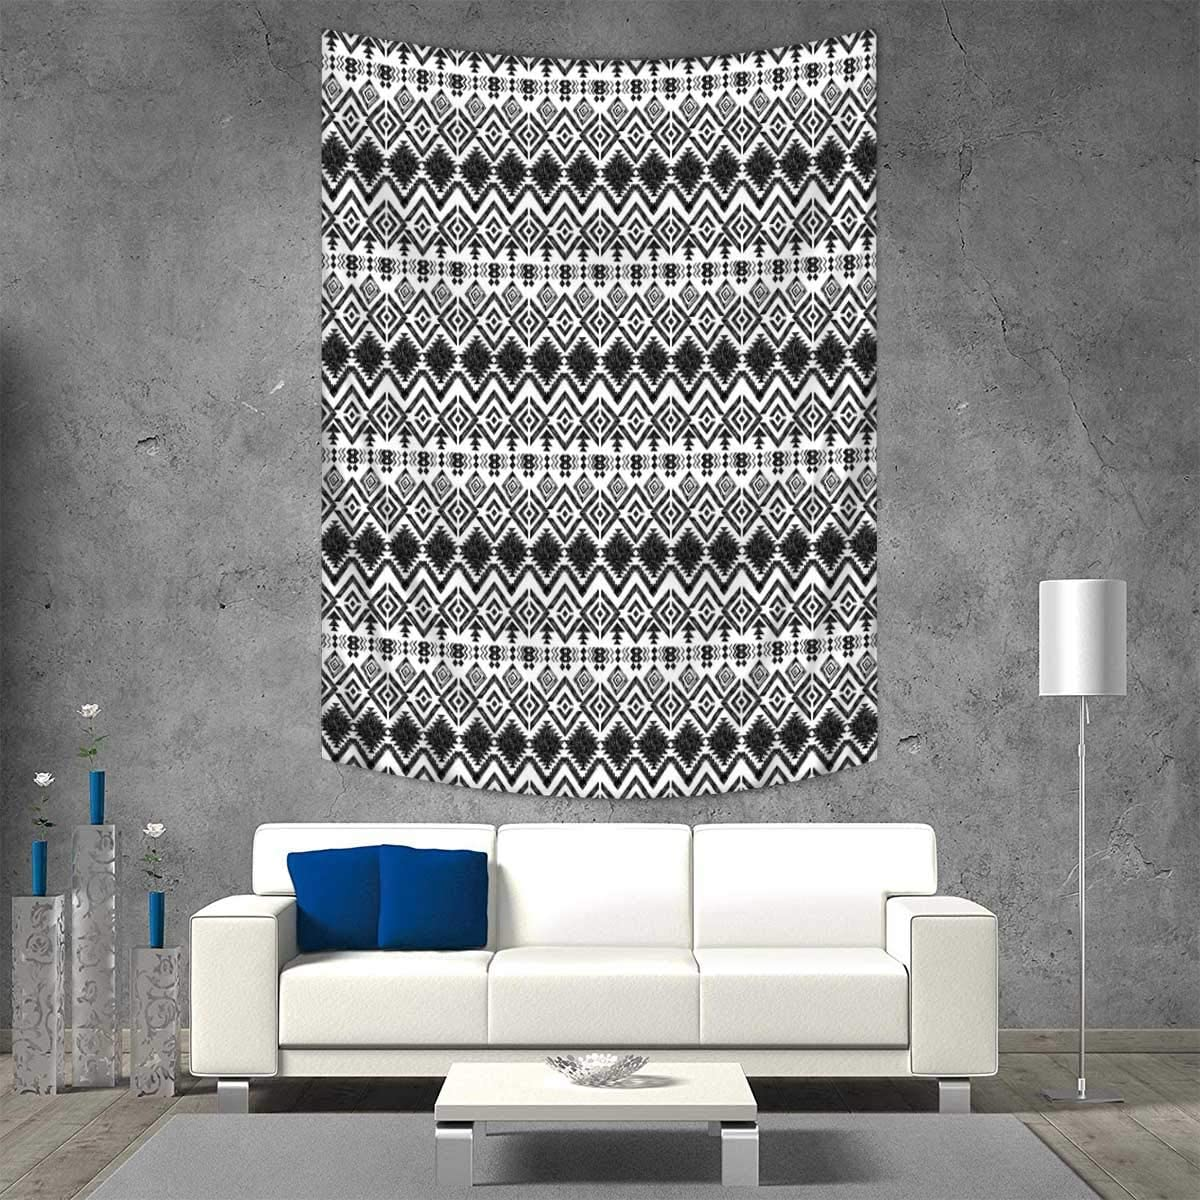 Modern Tapestry Wall Tapestry Geometric Design With Modern Hippie Zig Zags Triangles Squares Artful Print Art Wall Decor 51w X 60l Inch Black And White Amazon Co Uk Kitchen Home